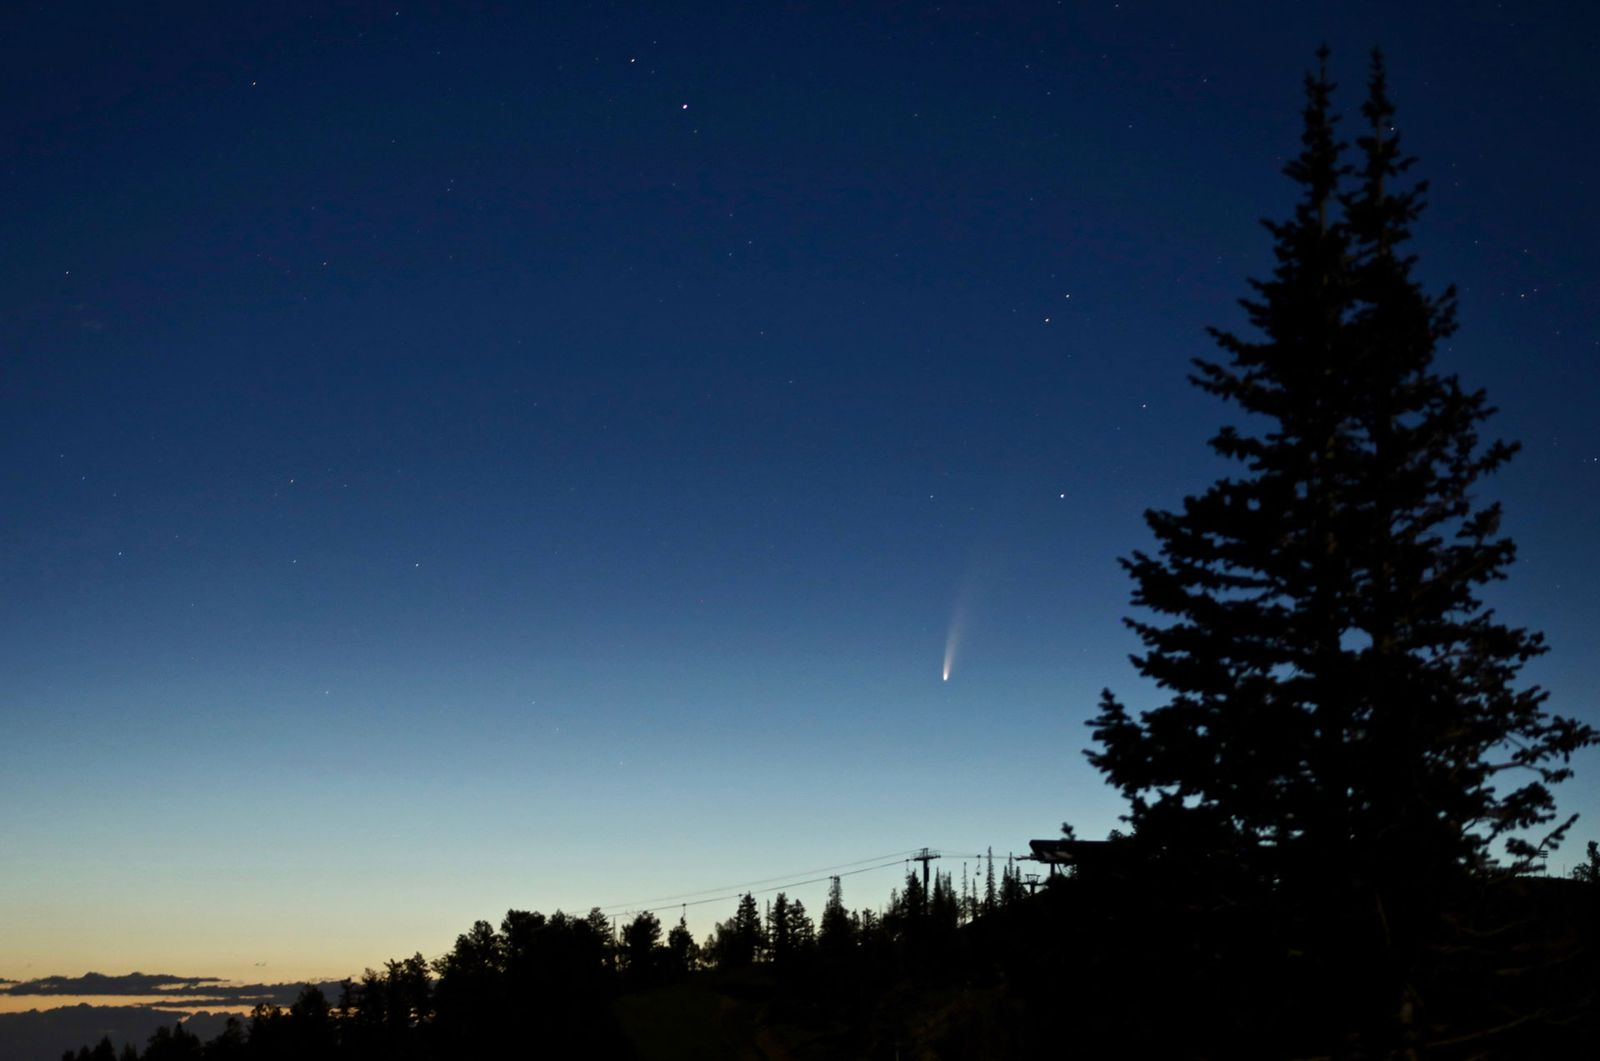 ;Ow To See The Christmas Comet 2020 How to Watch Comet Neowise's Spectacular Show   Smart News